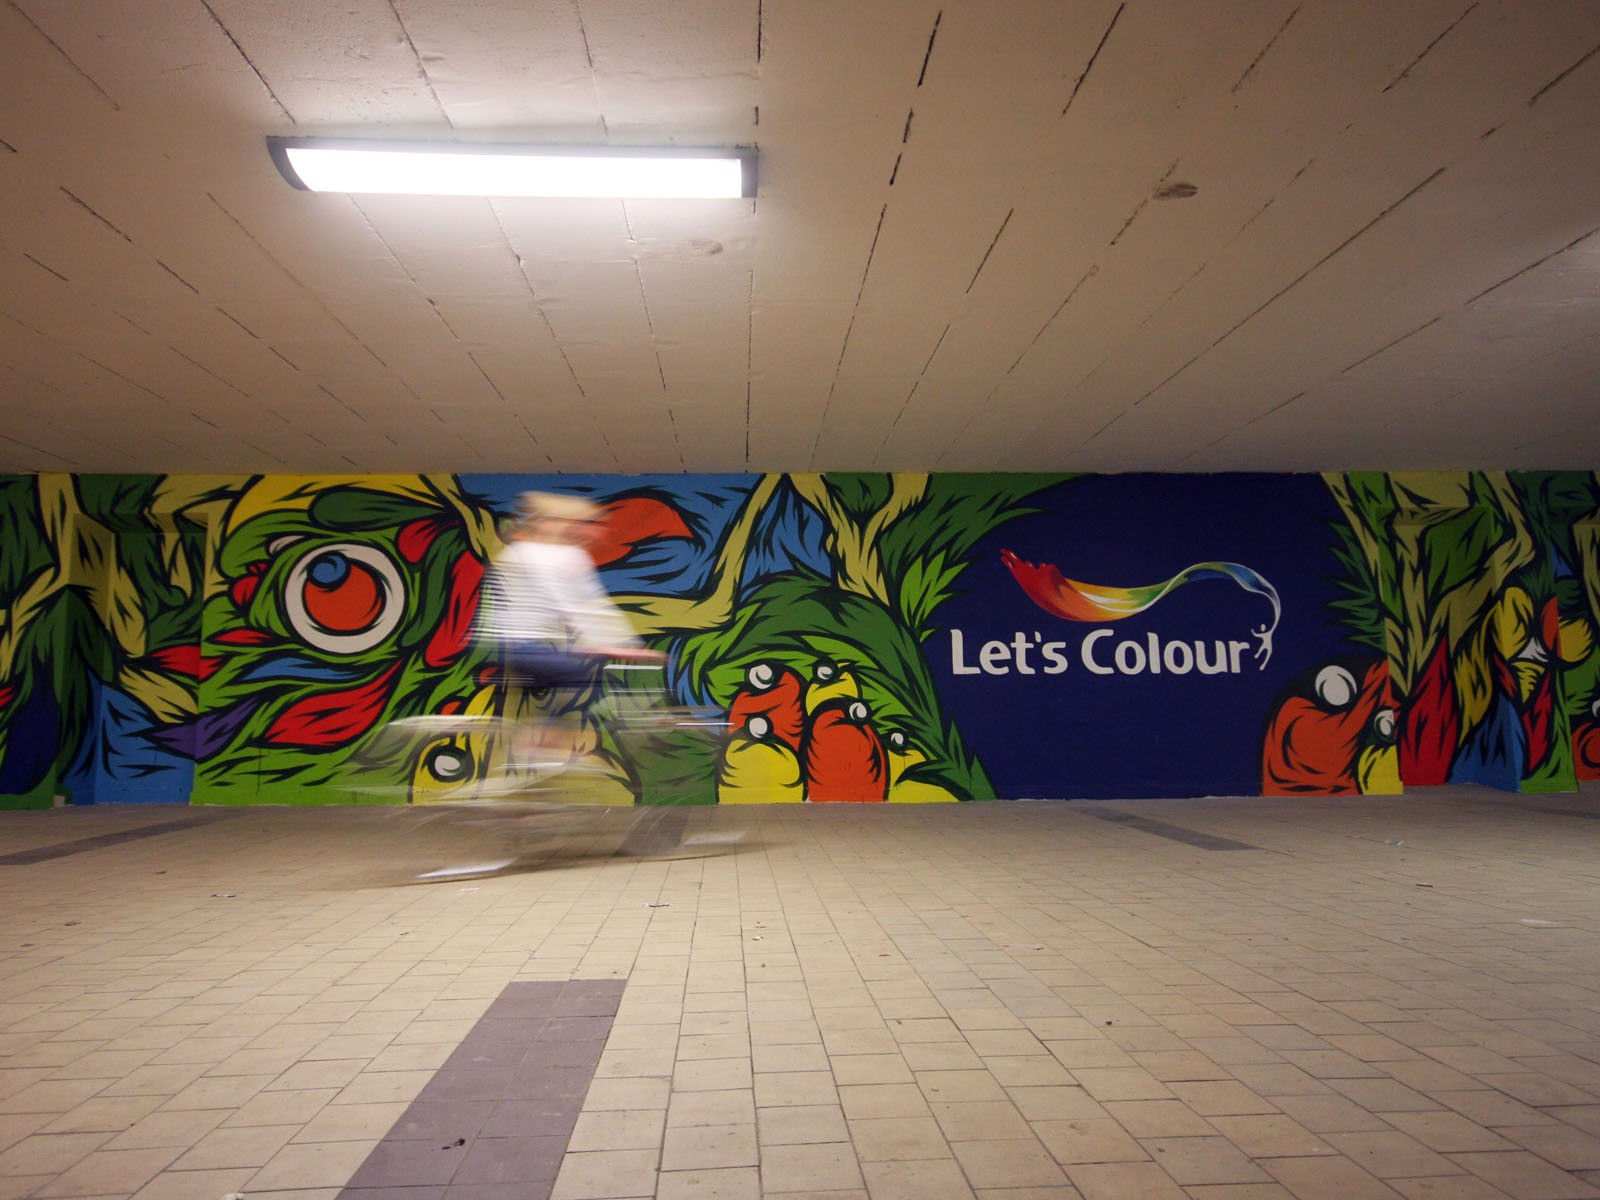 Dulux Lets colour - Swanski - Gdansk | Let's Colour | Portfolio